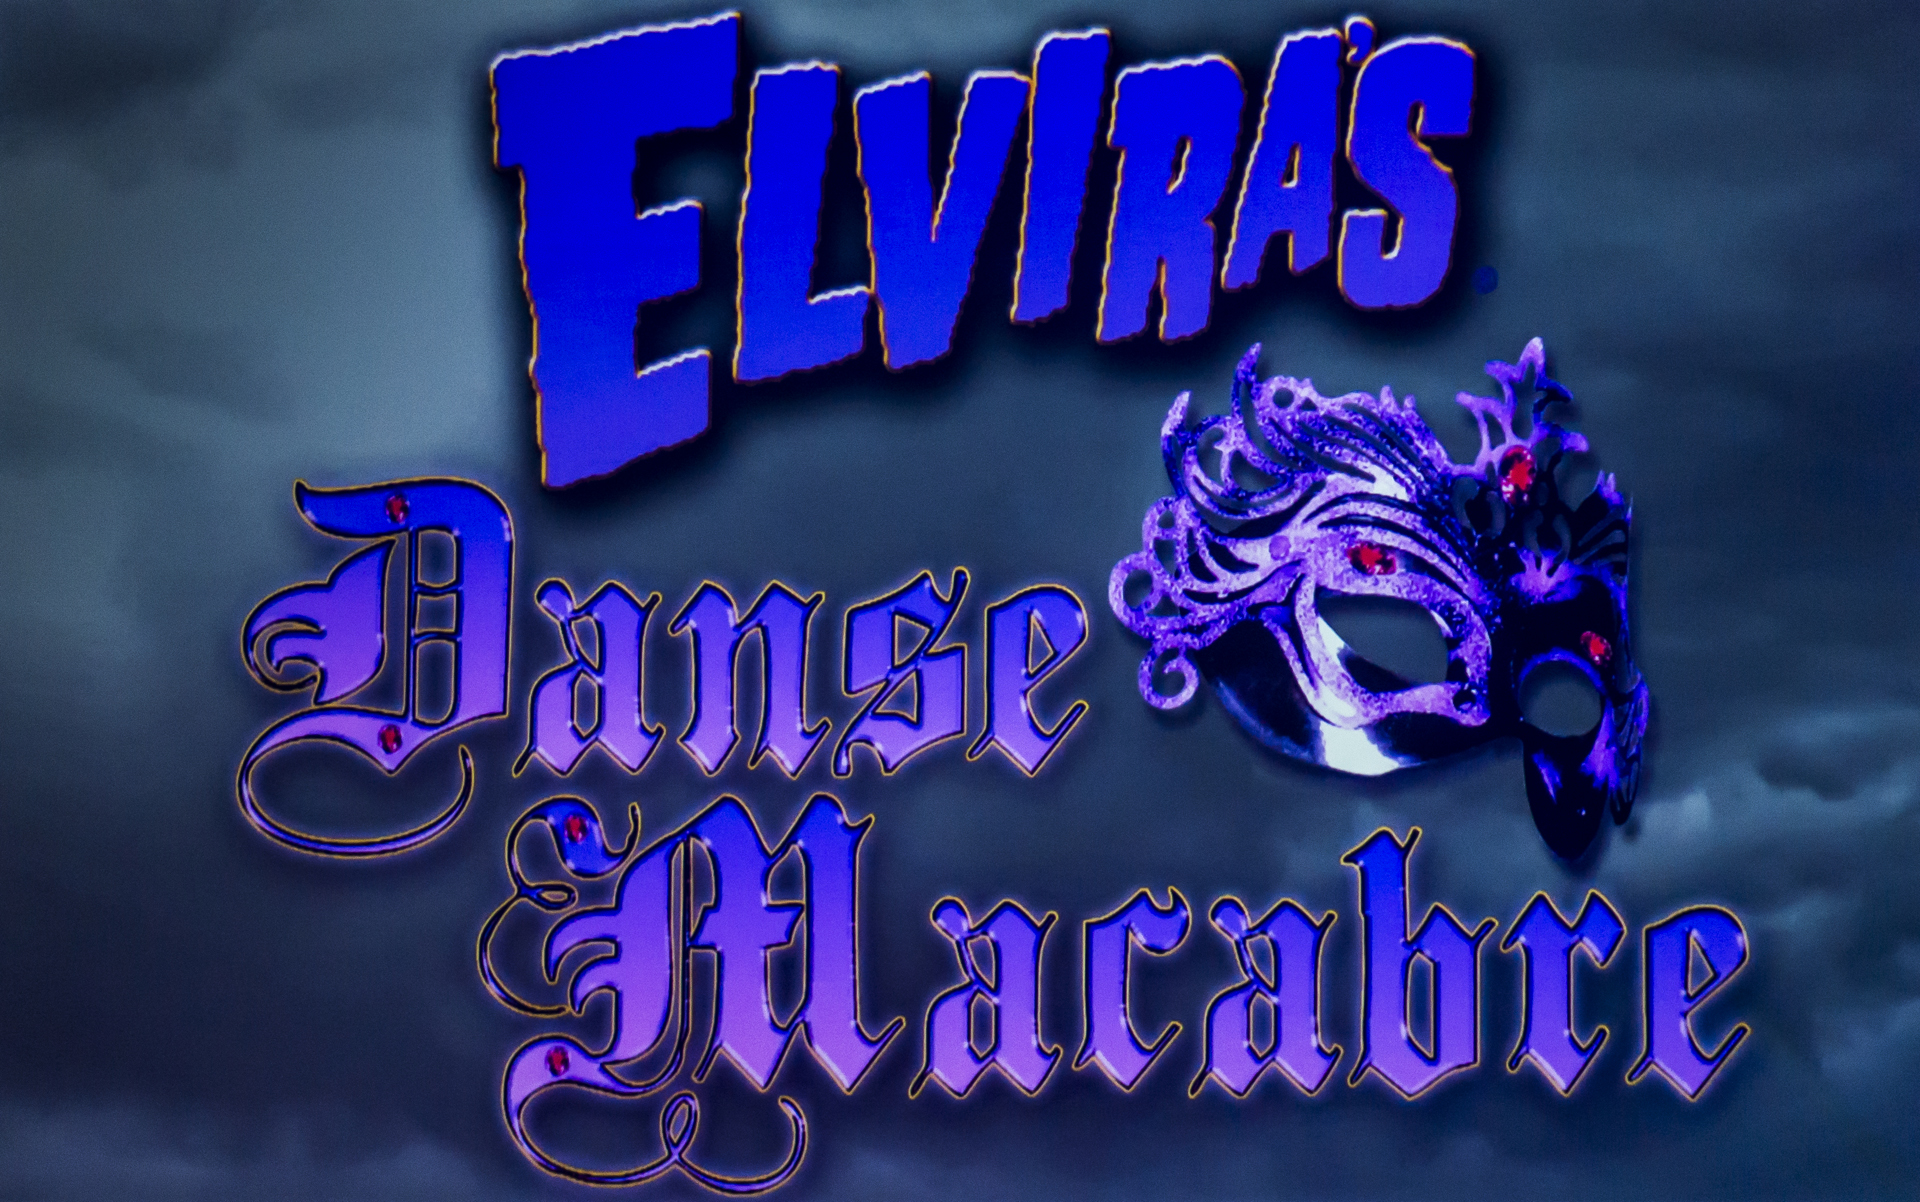 Elvira will be back with another dance and acrobatics variety show. (Image courtesy of Knott's Scary Farm)